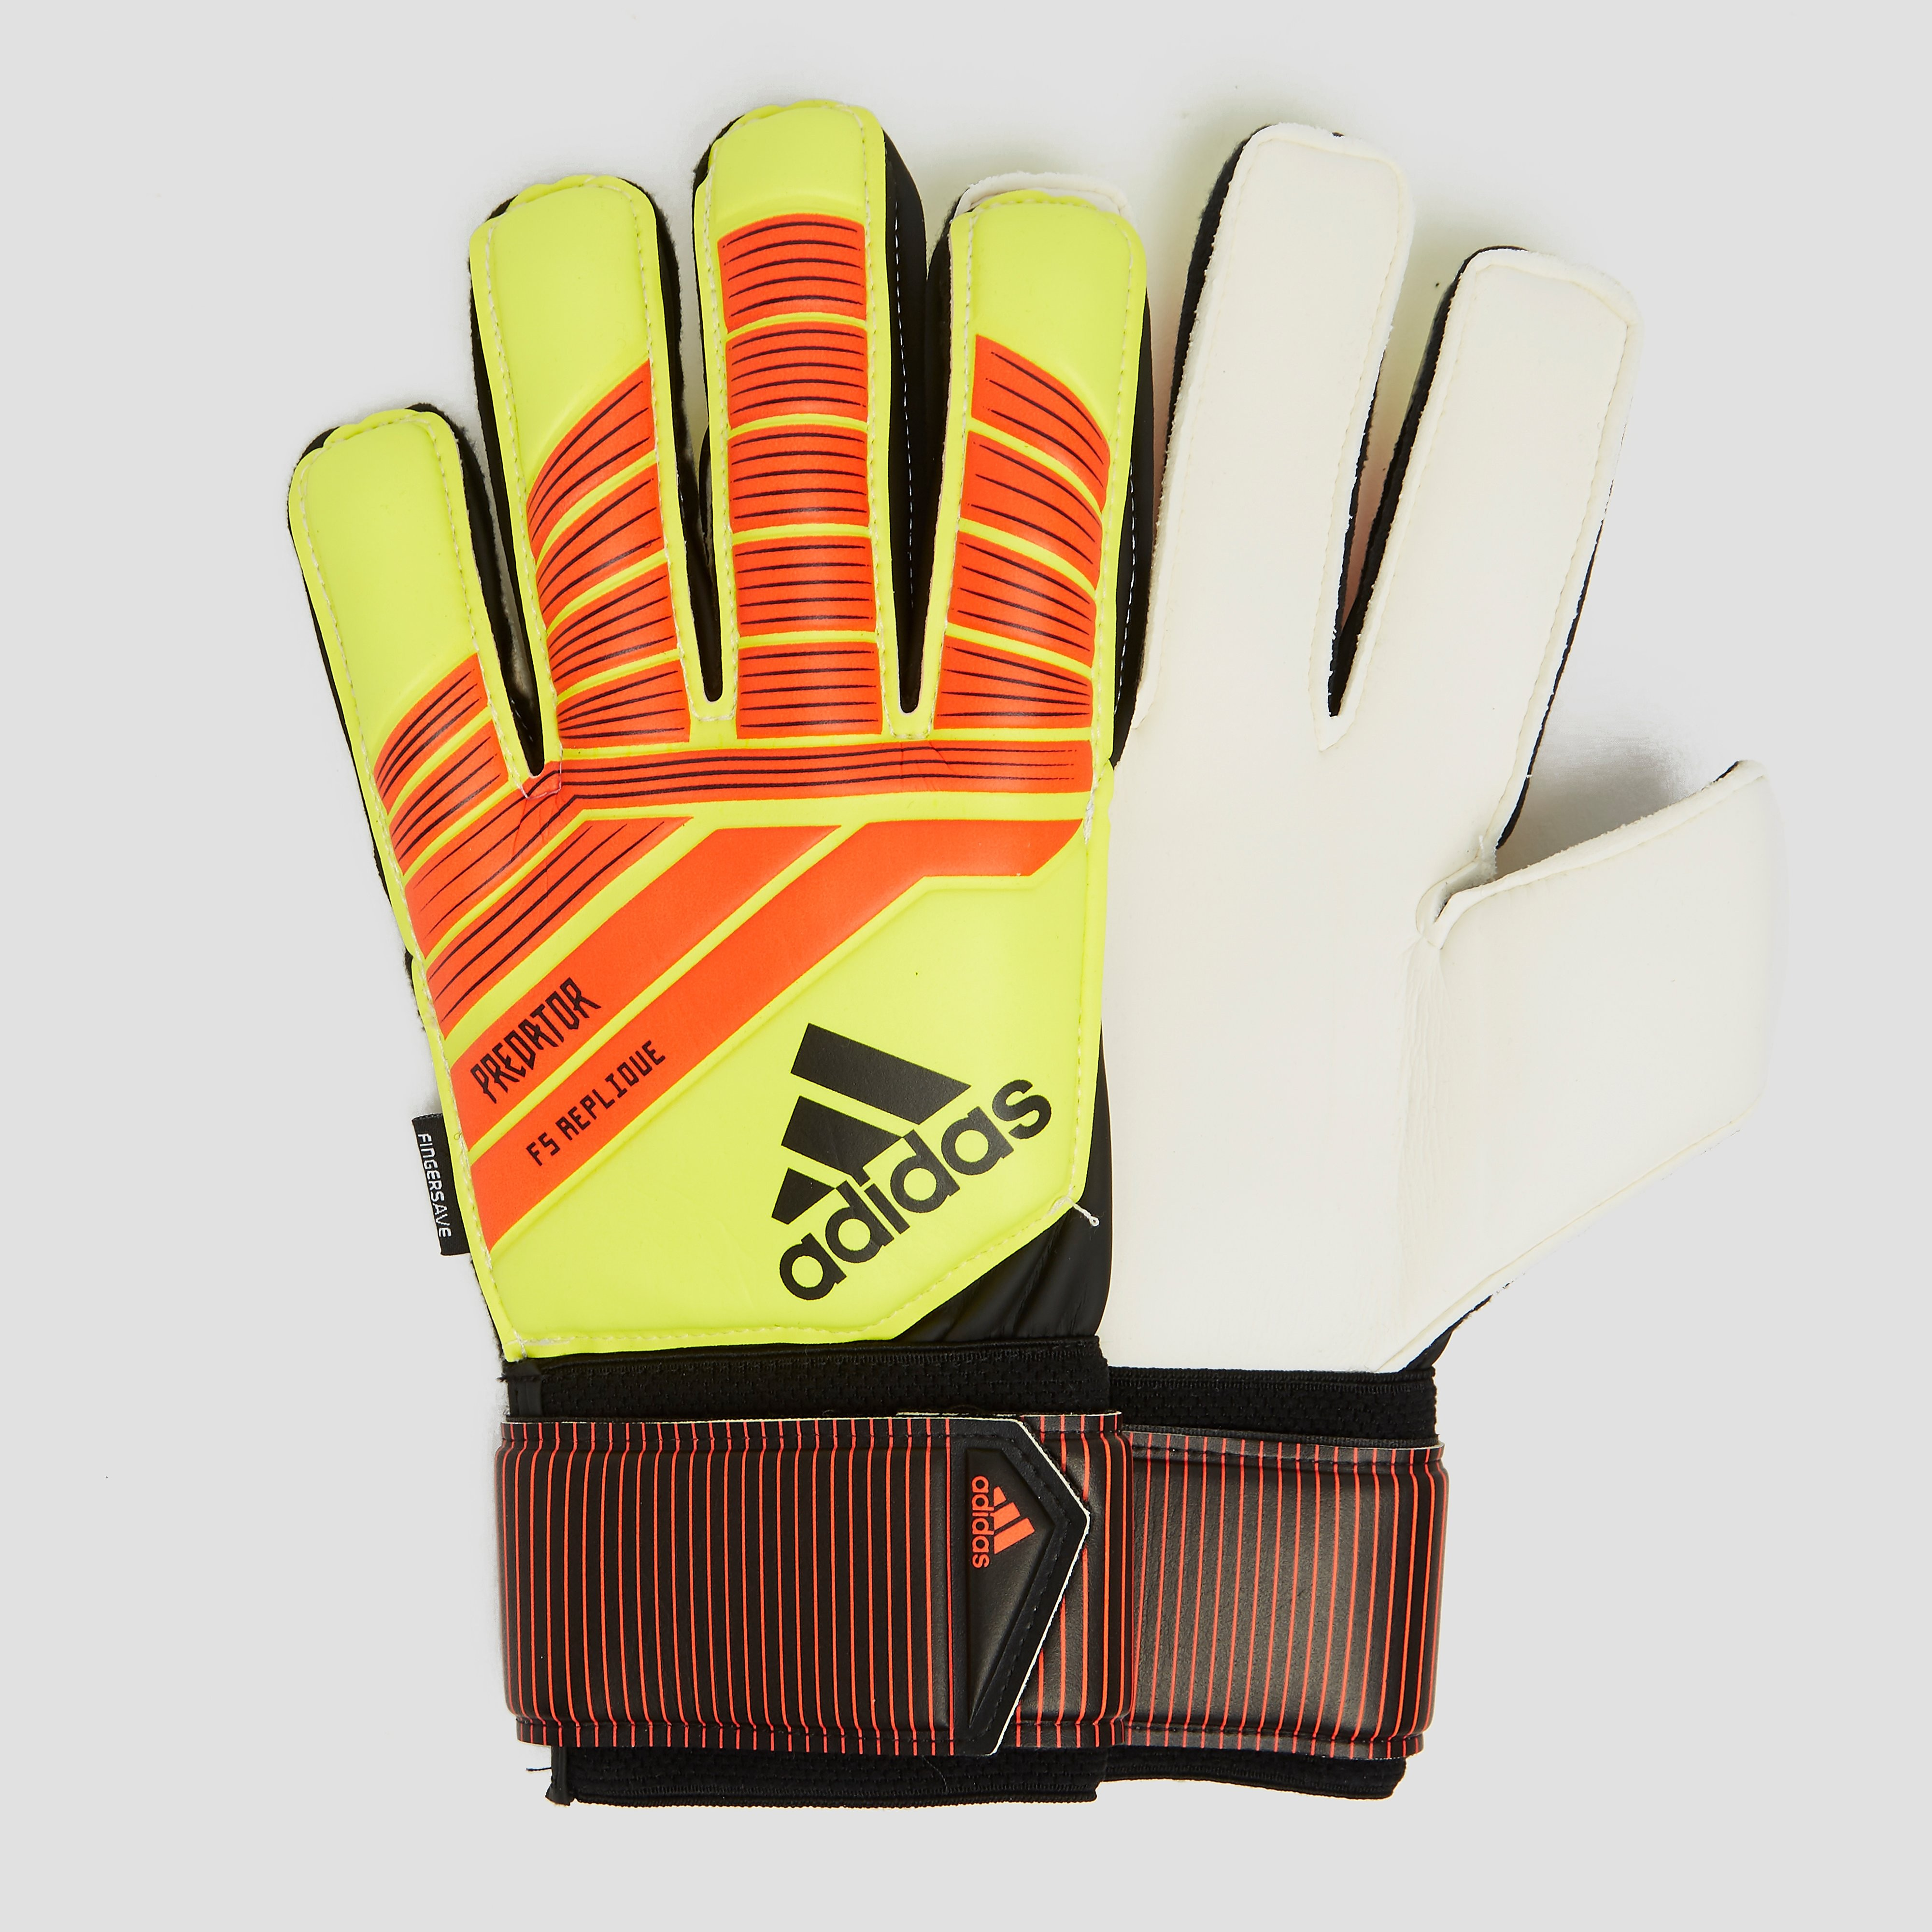 Predator Fingersave Replique Keepershandschoenen Zwart-Rood Black-Red